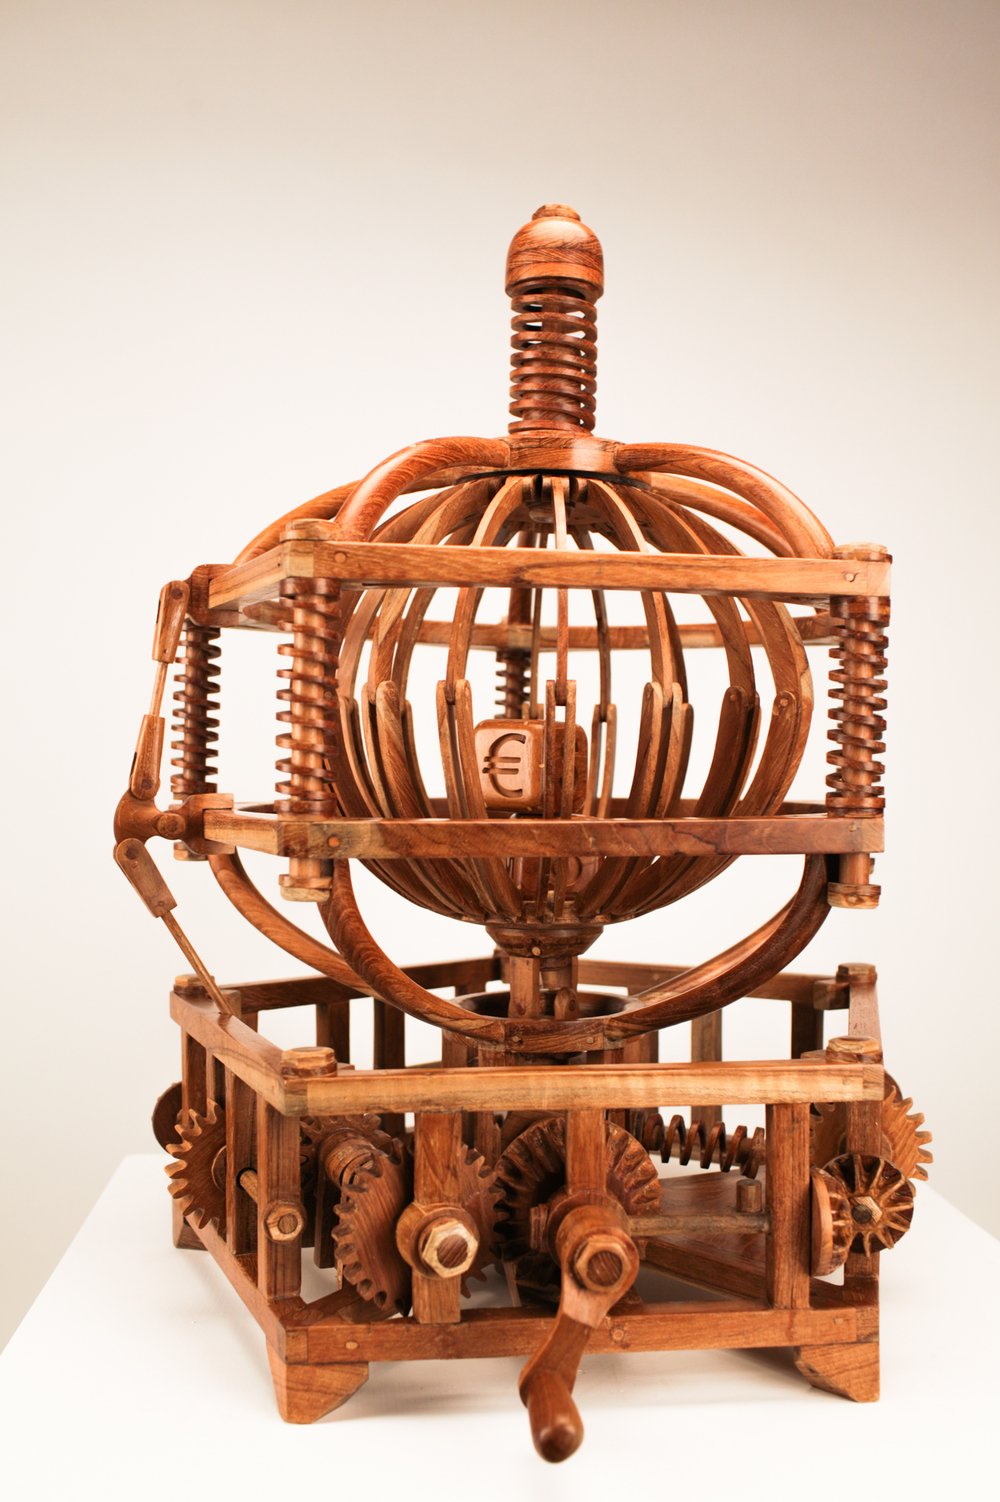 Fate Machine #1 , Teak Wood, 2016, 56L x 60W x 66Hcm